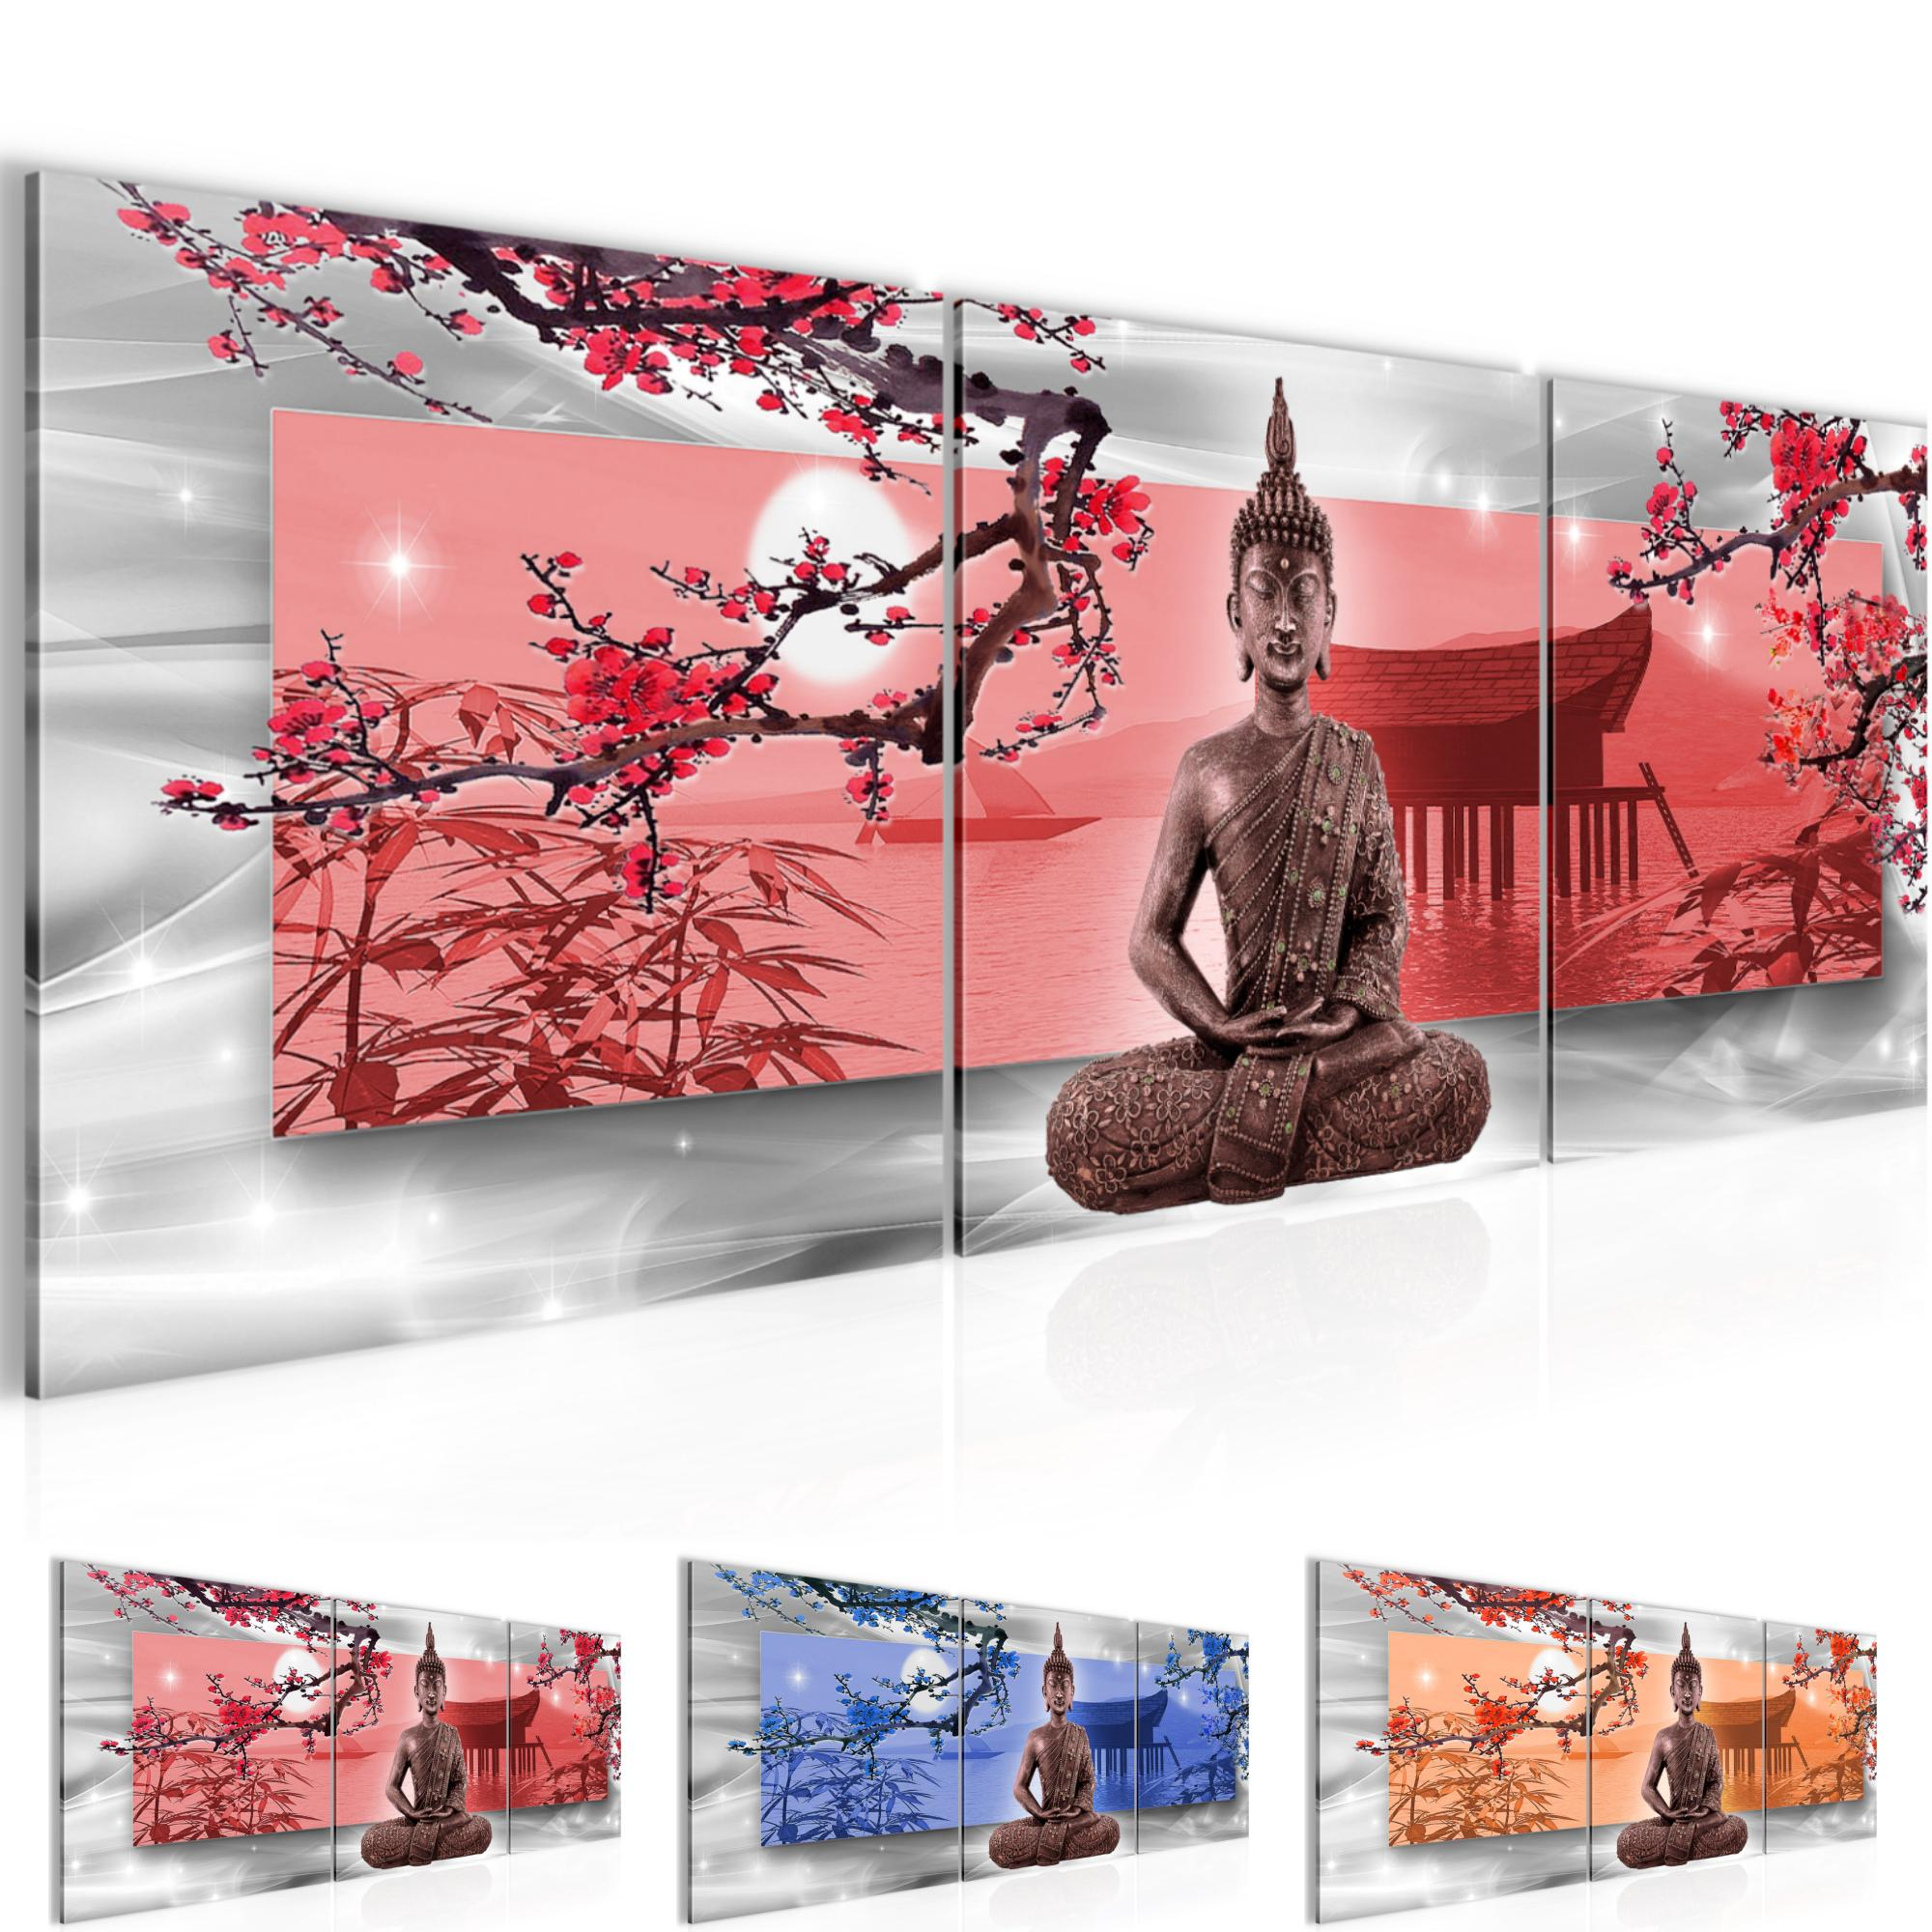 buddha feng shui bild kunstdruck auf vlies leinwand xxl dekoration 504934p. Black Bedroom Furniture Sets. Home Design Ideas